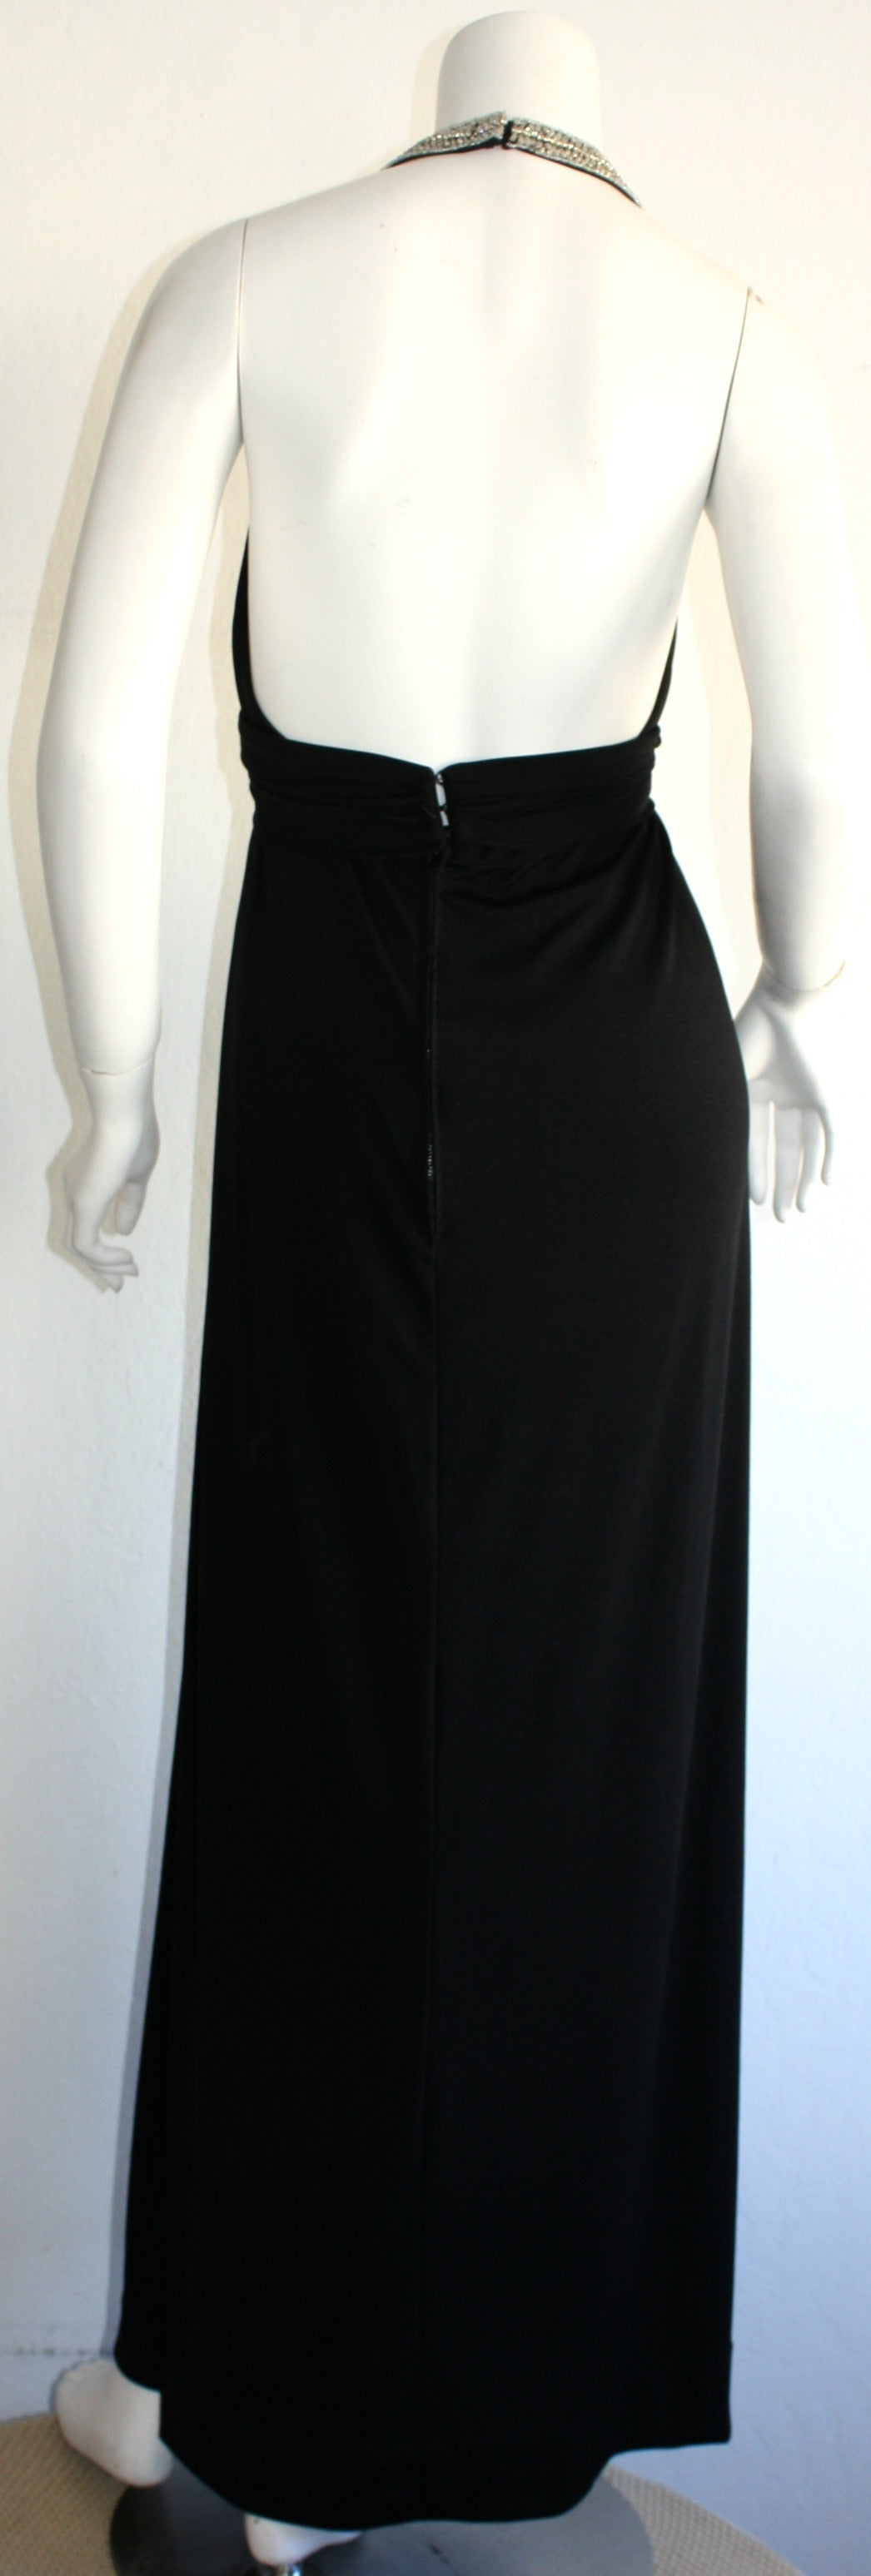 Women's Stunning 1970s Vintage Victoria Royal Black Halter Diamanté Jersey Dress For Sale